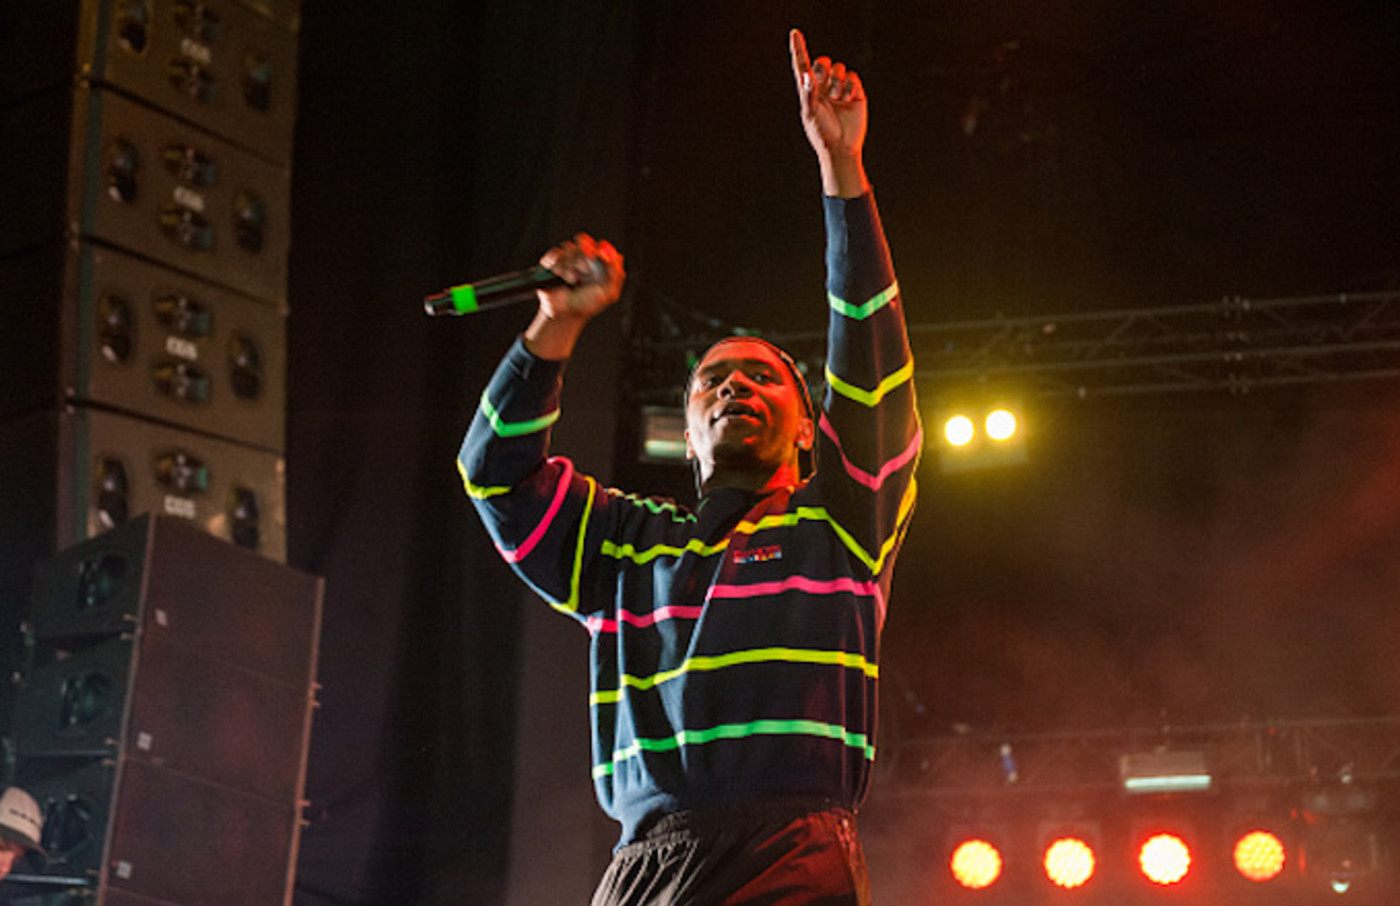 Lil B performs live on August 12, 2016 in Helsinki, Finland